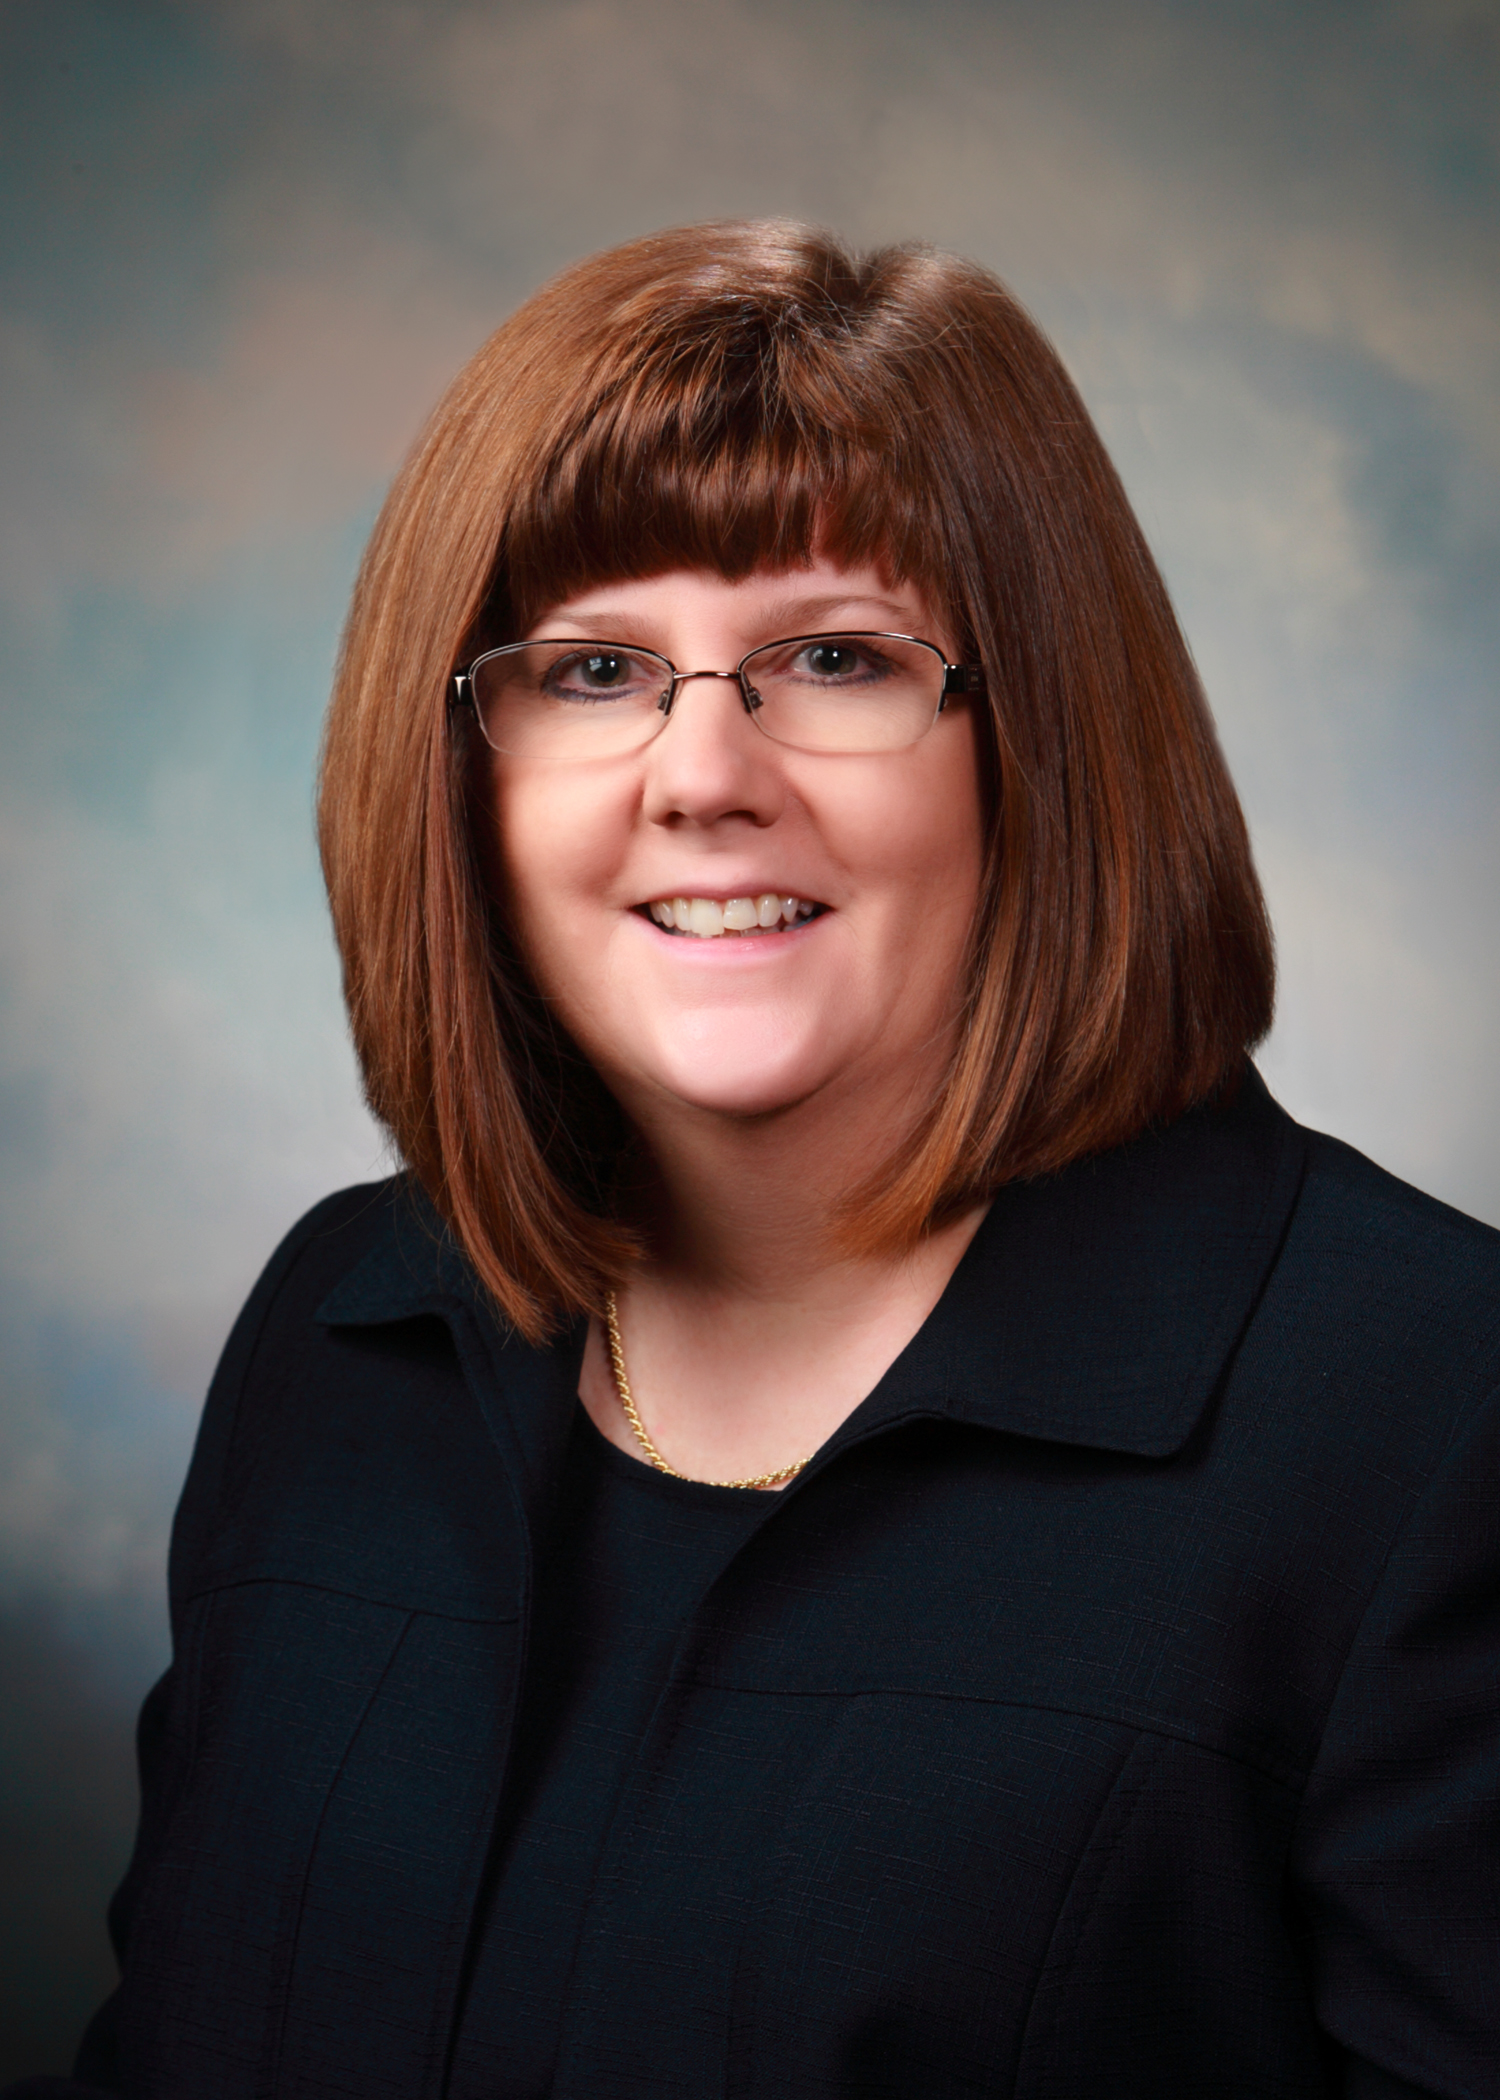 Jane Grayson joined Purk & Associates, P.C., as an Associate.